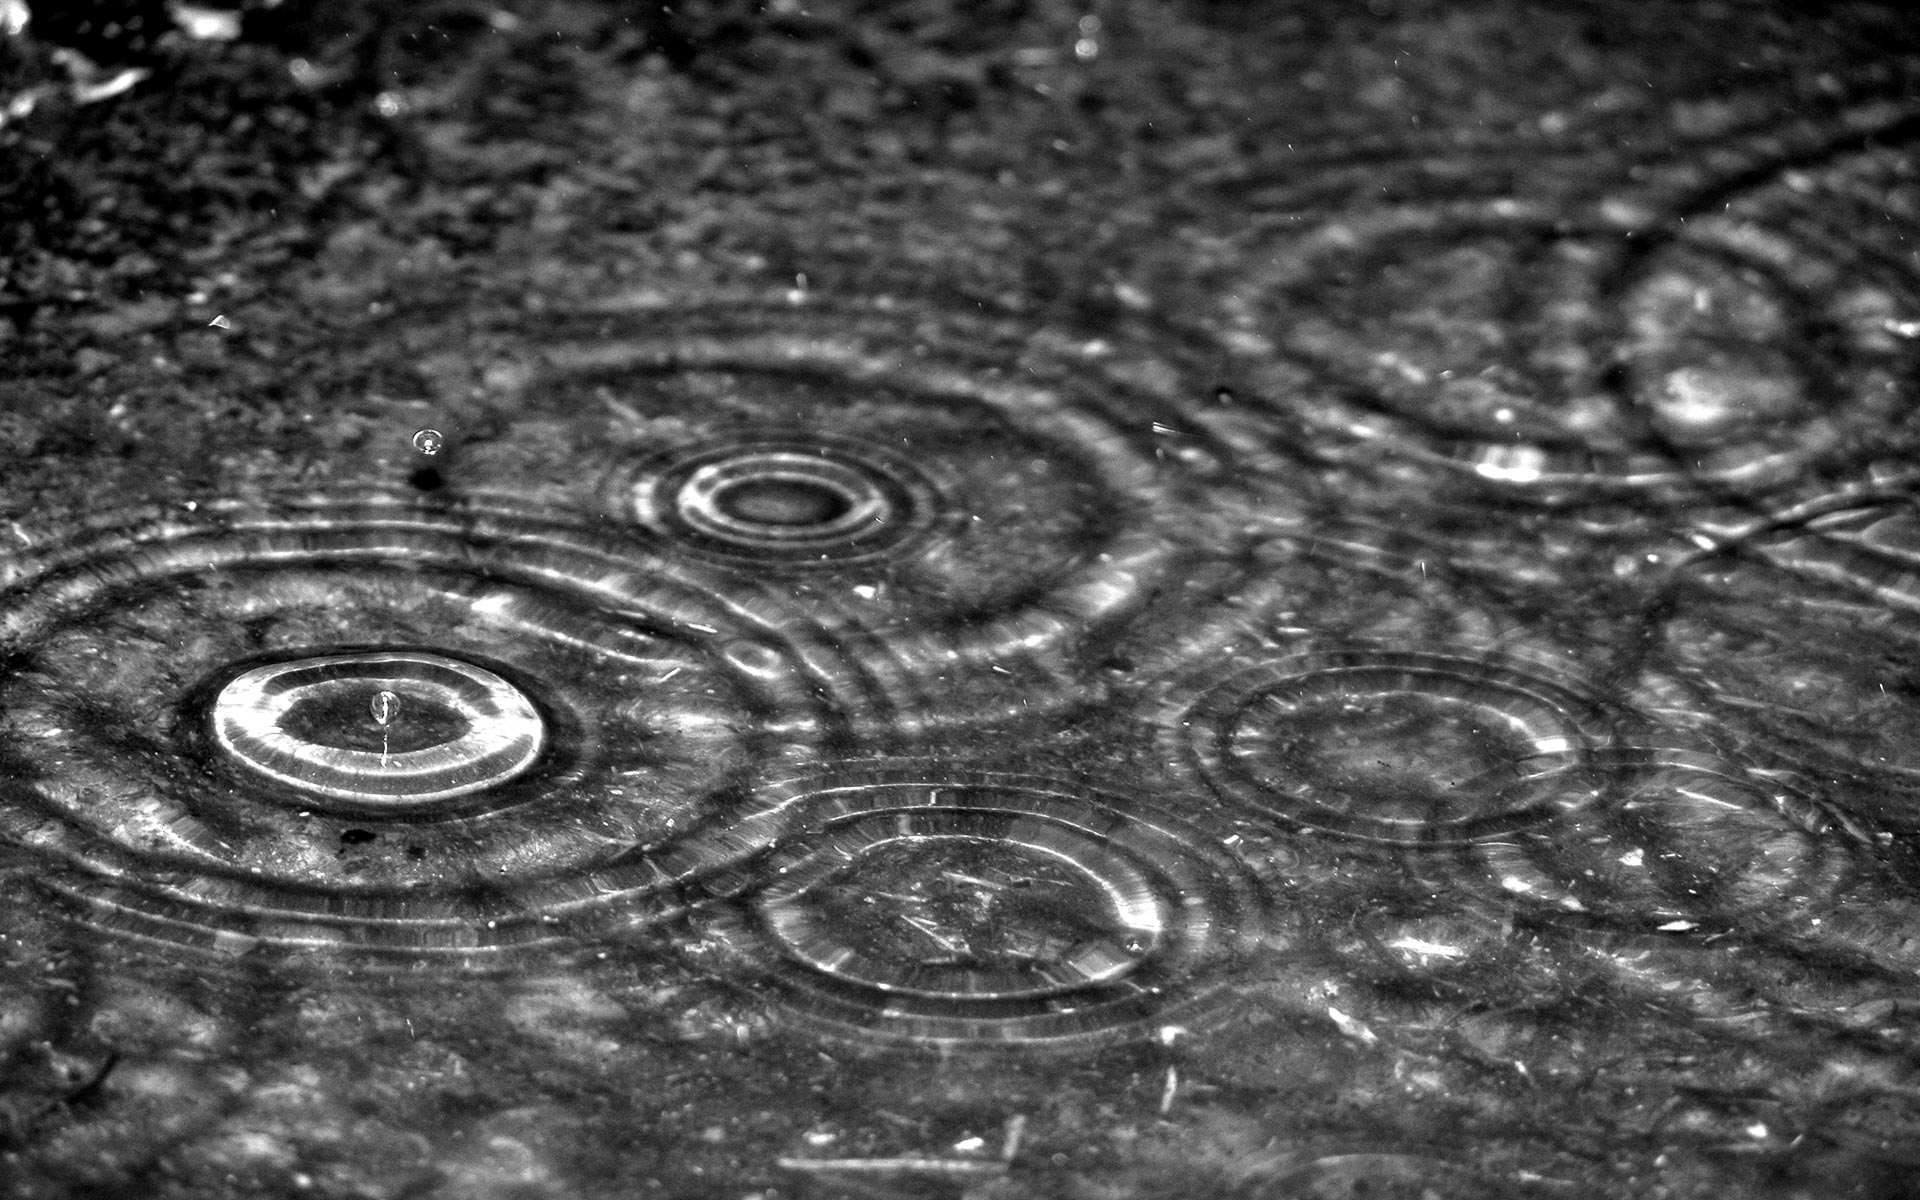 Abstract Water Drops Miscellaneous Rain Hits Puddle Free 375642 Wallpaper wallpaper